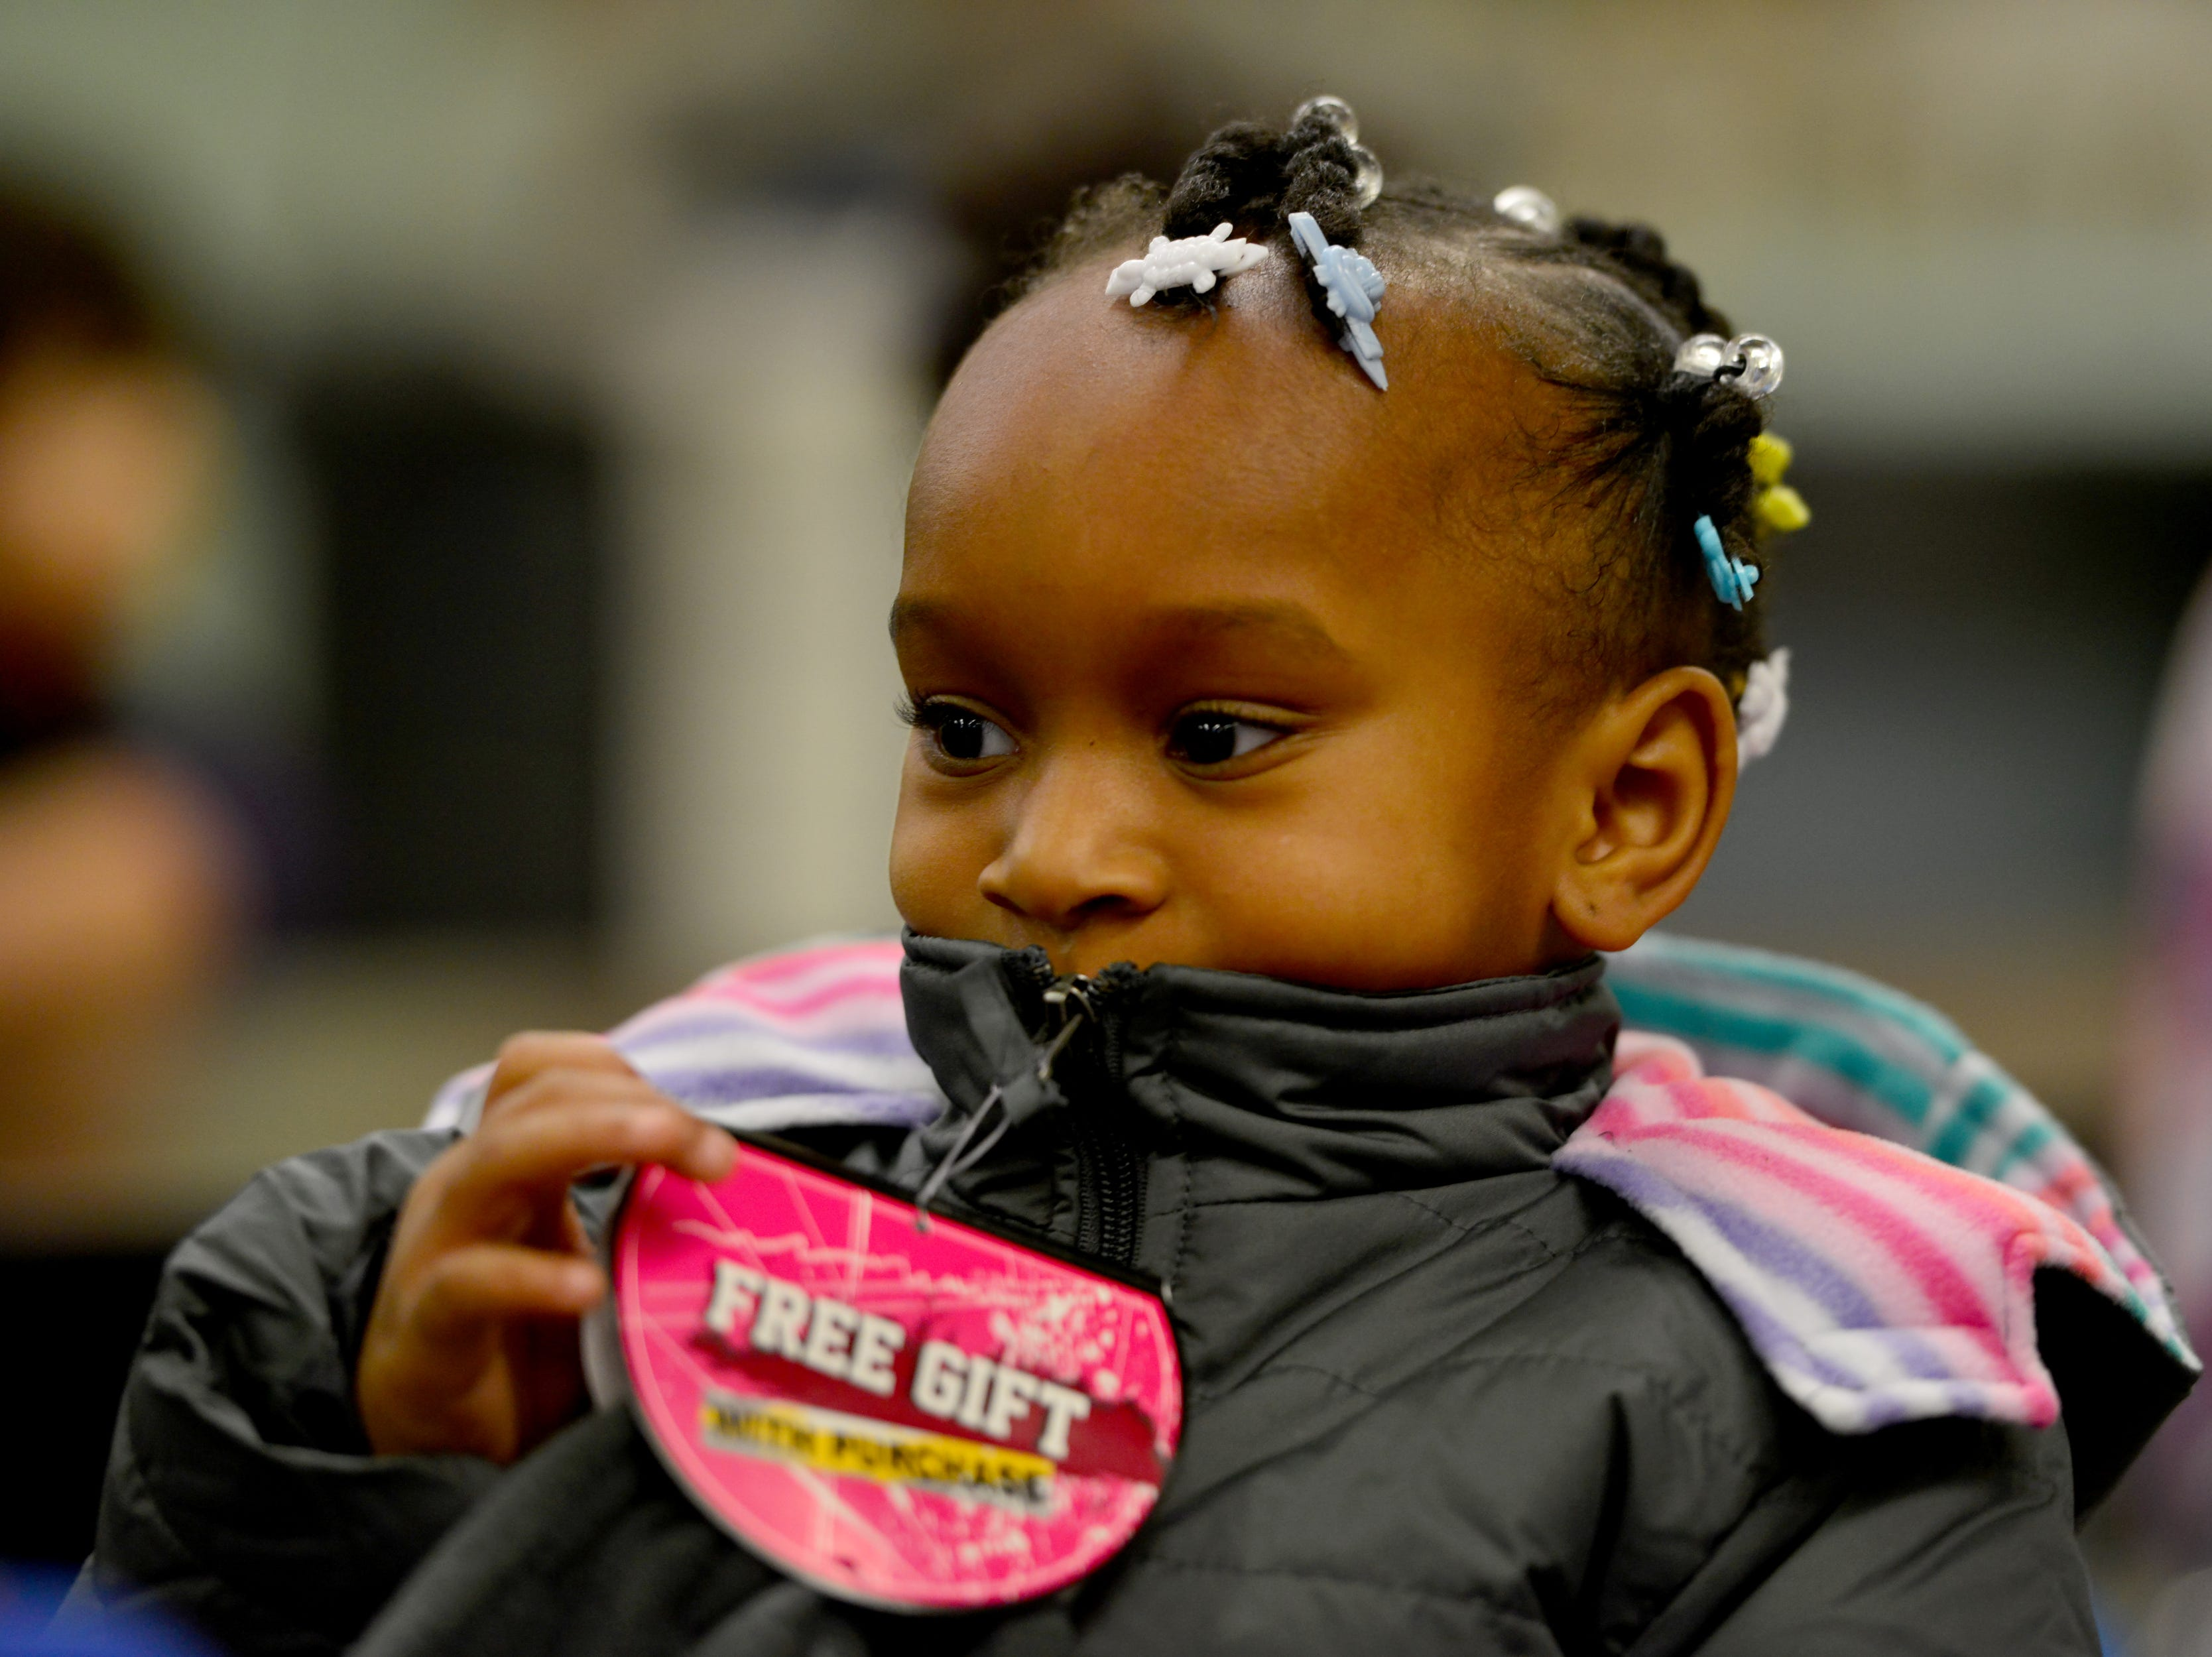 A'mor Leary, a PreK3 students, zips up her new coat. The Paterson Rotary held their eighth annual Christmas Coat Drive in Paterson, on Monday morning December 17, 2018. The club donated coats to all the students at Edward W. Kilpatrick Elementary School. The Rotary Club raised funds from its members and the community to buy 380 coats for the students.